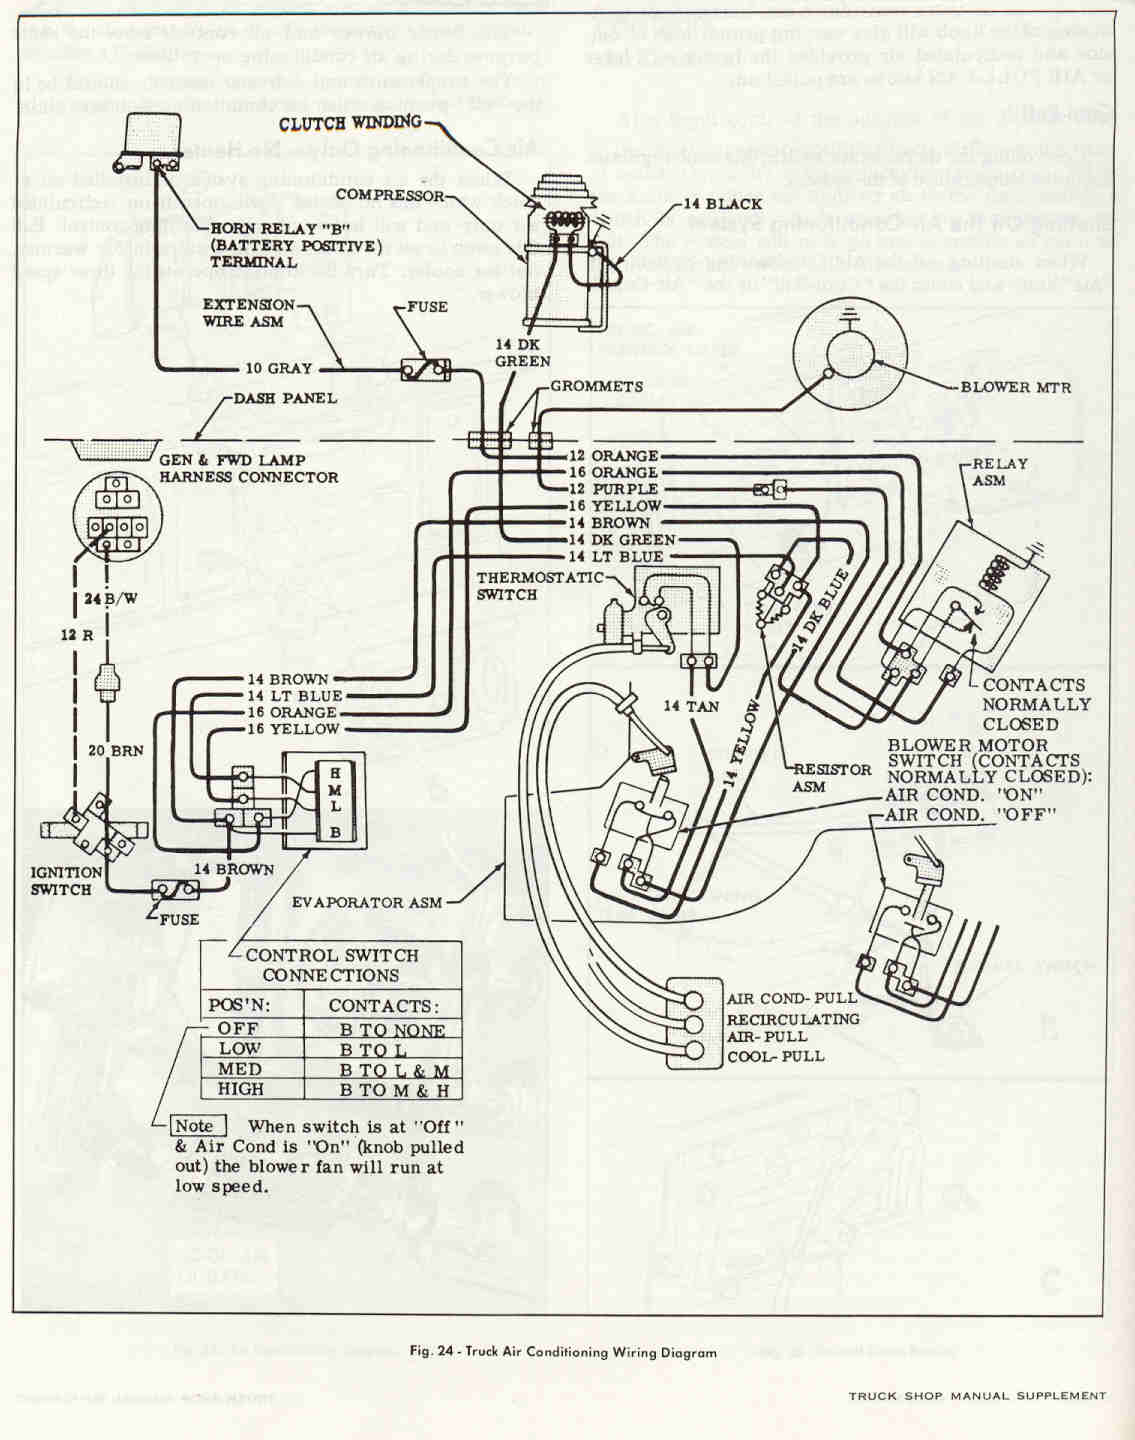 1971 chevy truck wiring diagram heater